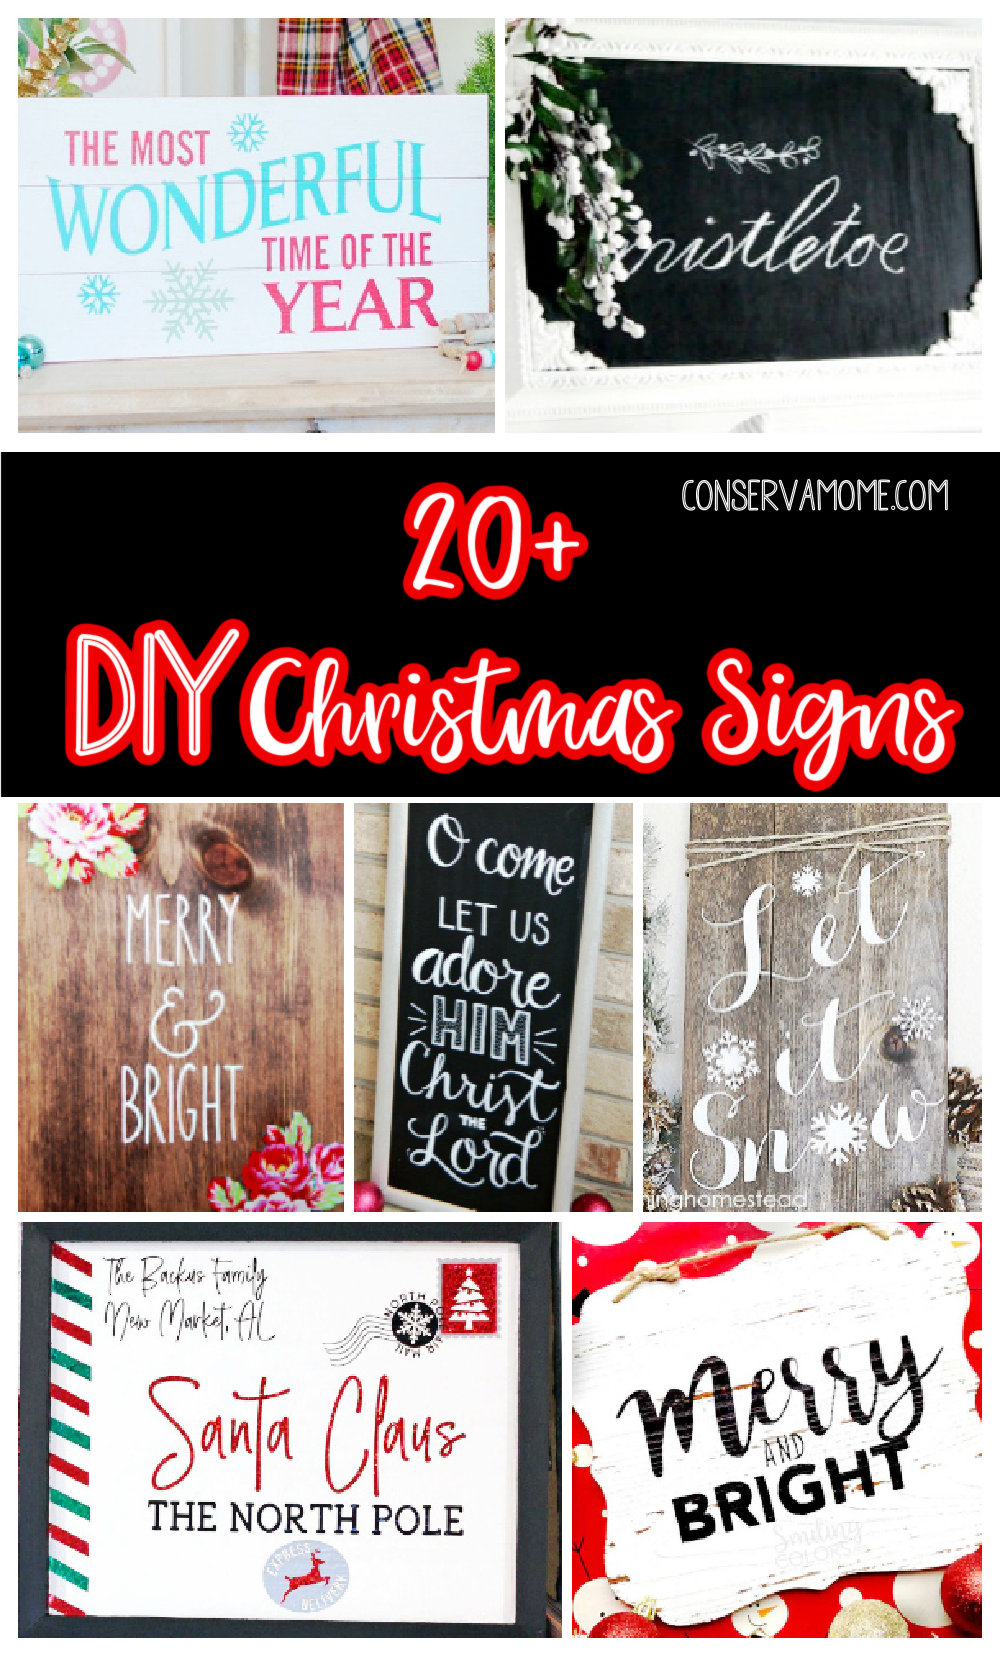 20+ DIY Christmas Signs perfect for Christmas Cheer!